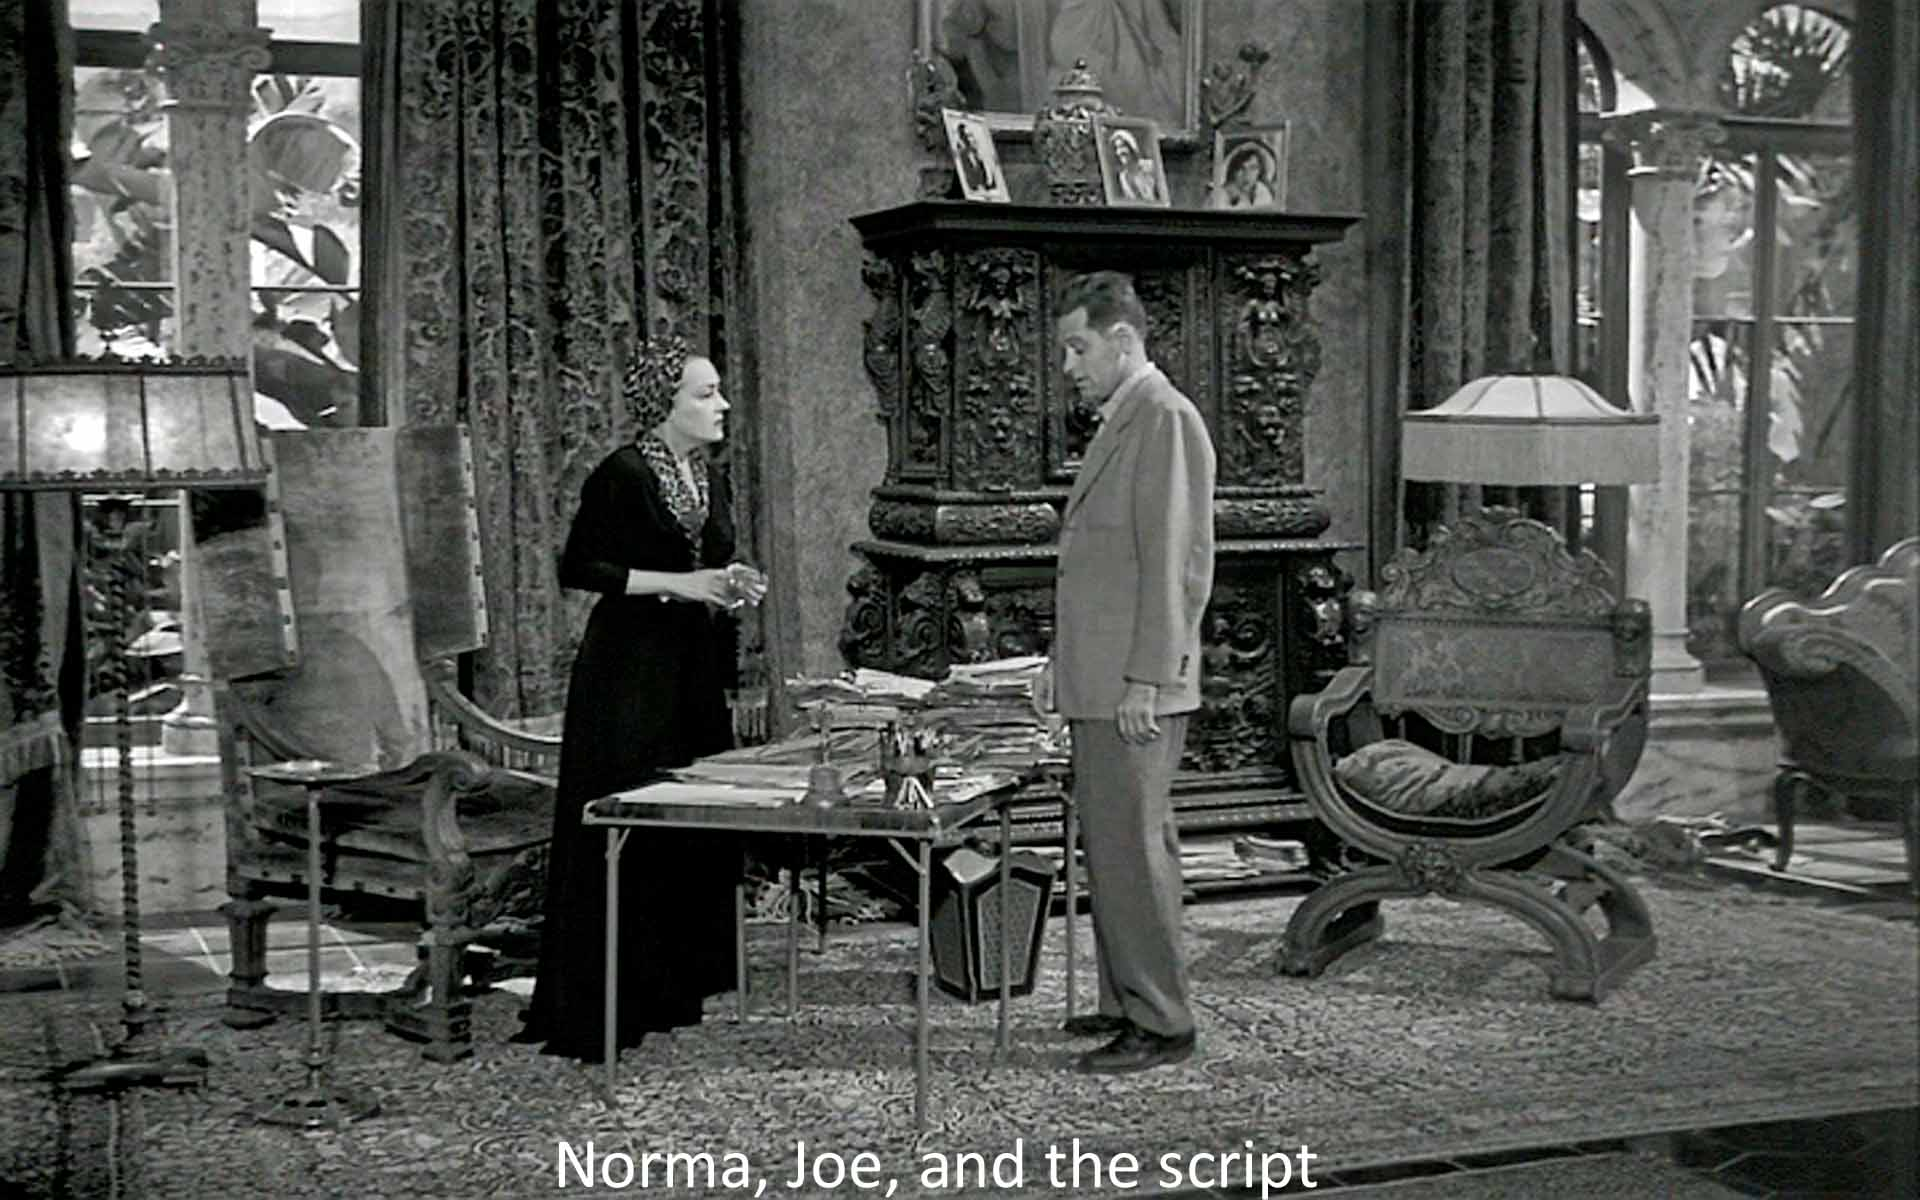 Norma, Joe, and the script